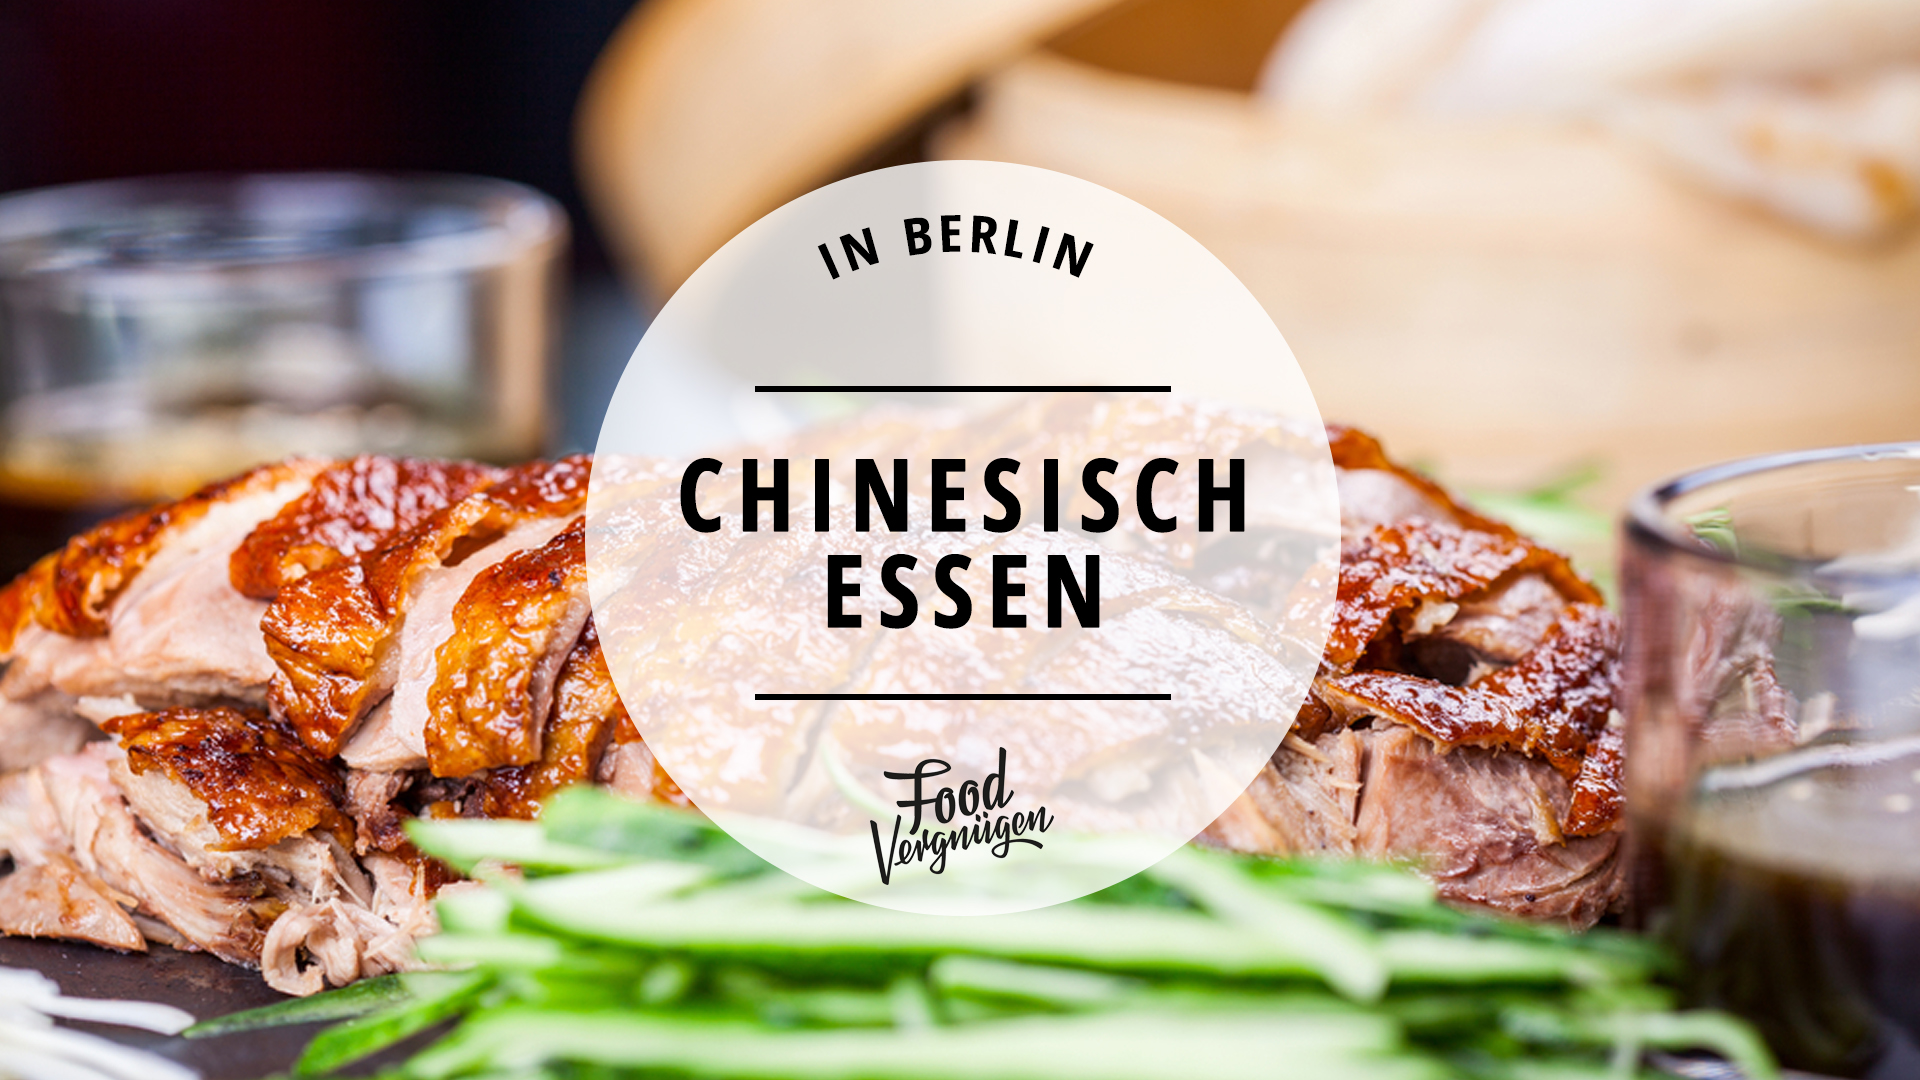 11 restaurants in denen ihr richtig gut chinesisch essen k nnt mit vergn gen berlin. Black Bedroom Furniture Sets. Home Design Ideas